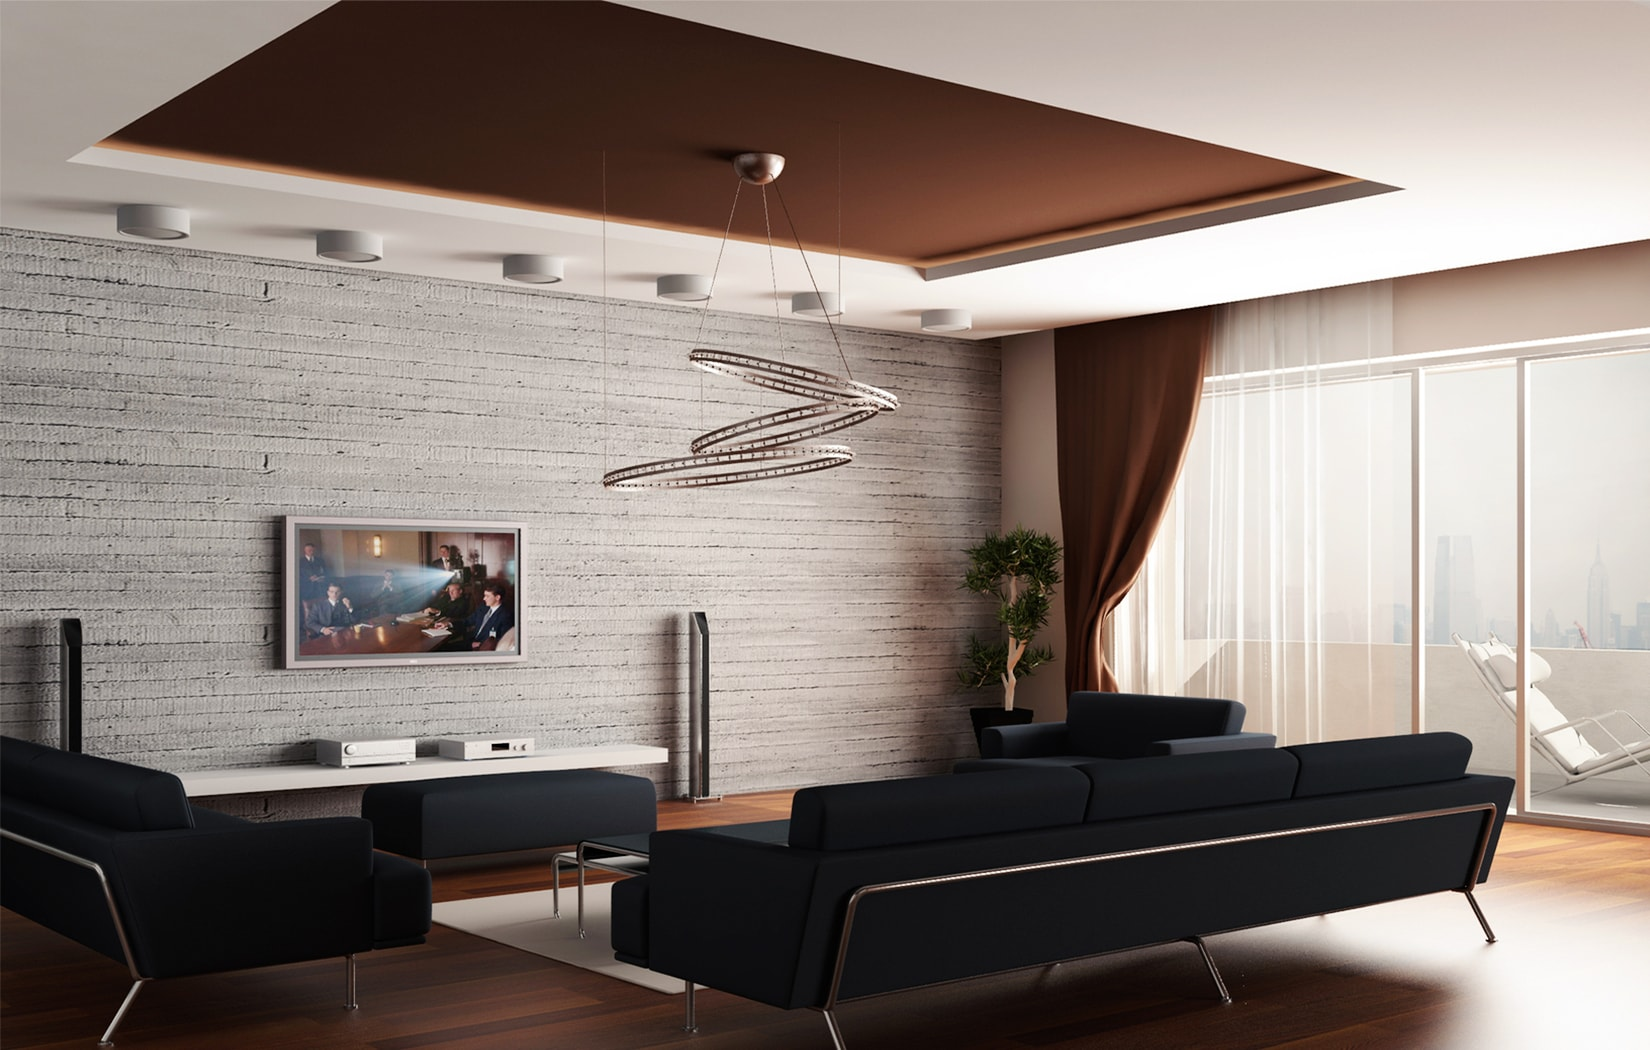 Modern living room interior design with stone cladded accent wall and black sofa